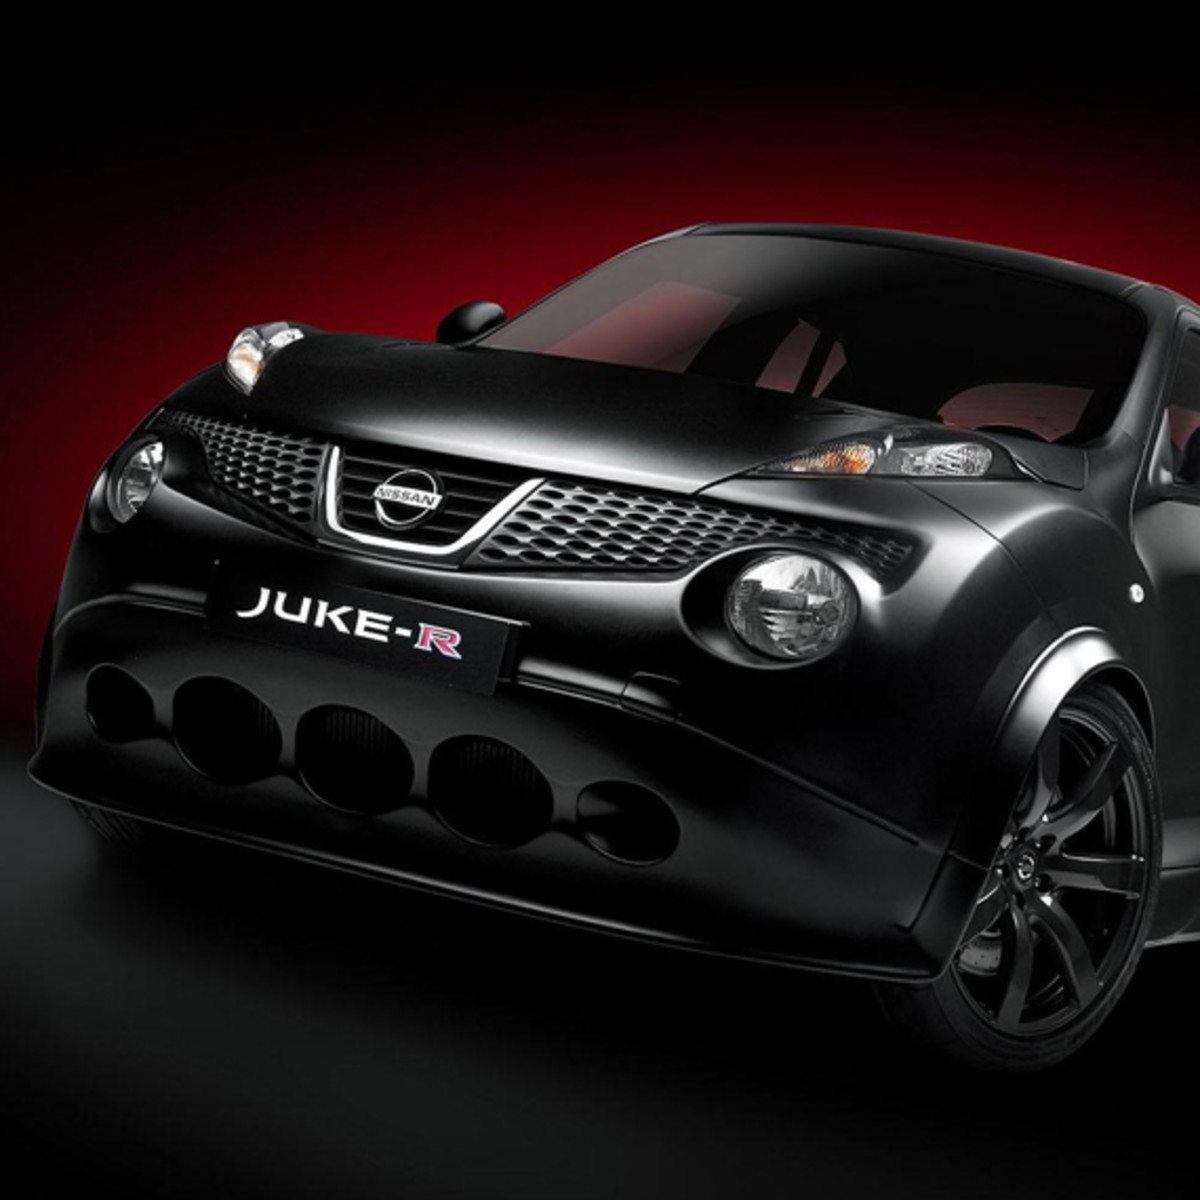 nissan-juke-r-officially-unveiled-02